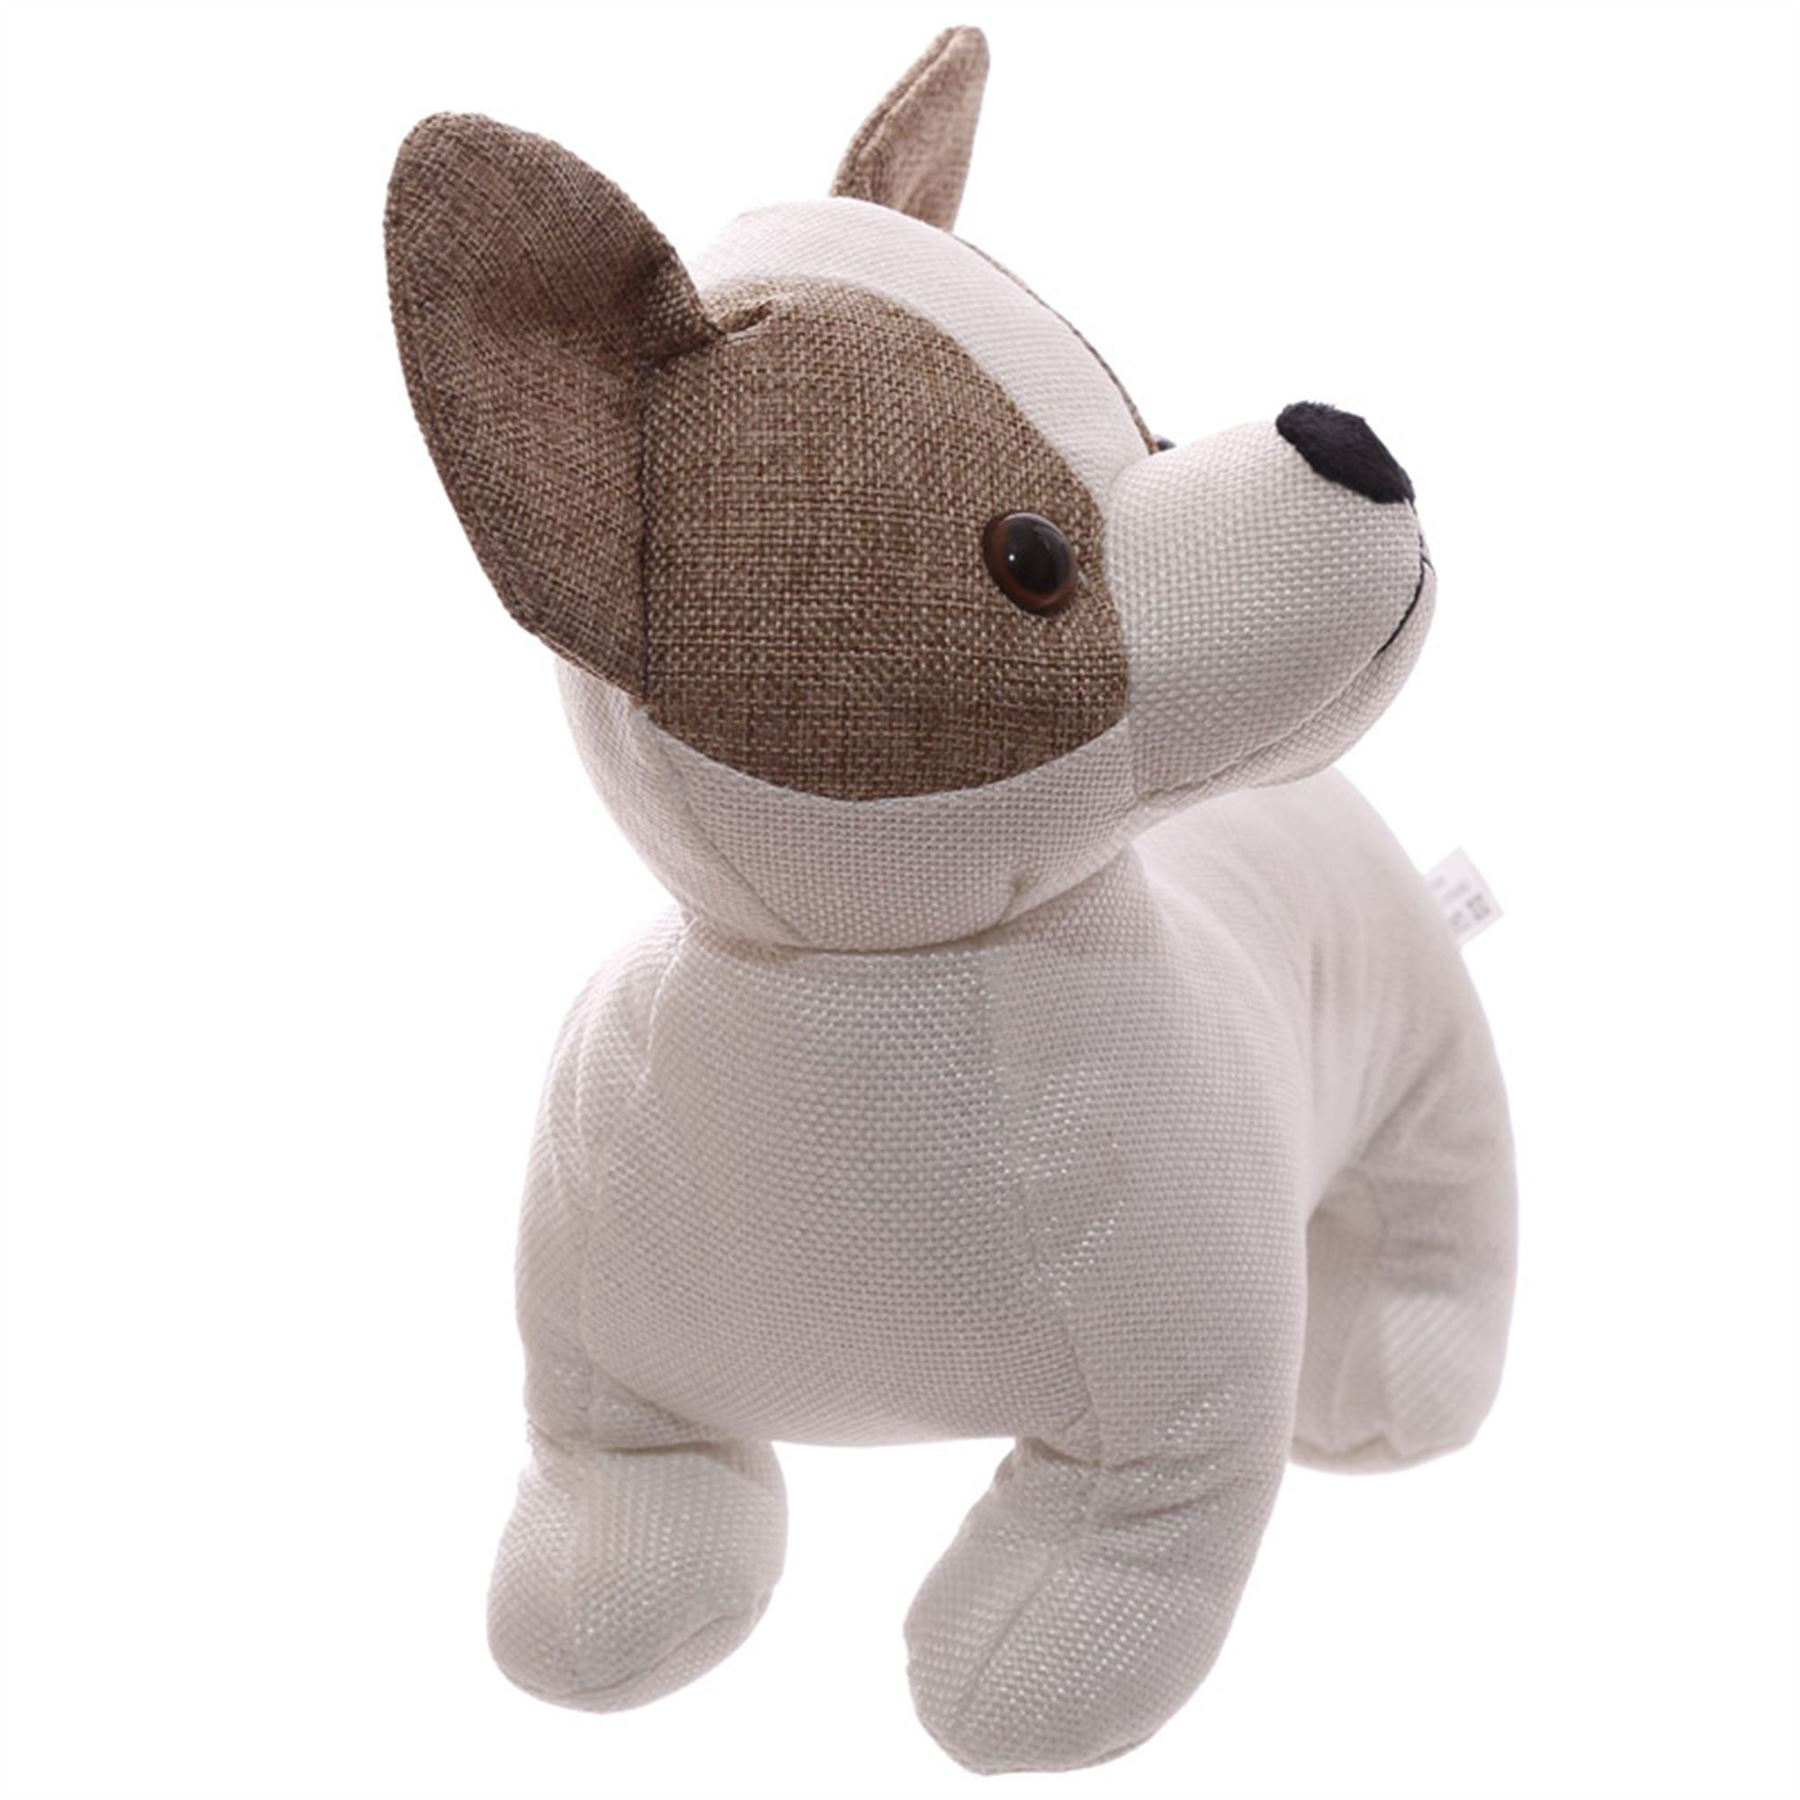 Chihuahua Shaped Fabric Dog Door Stop 22cm High Door Stopper Free